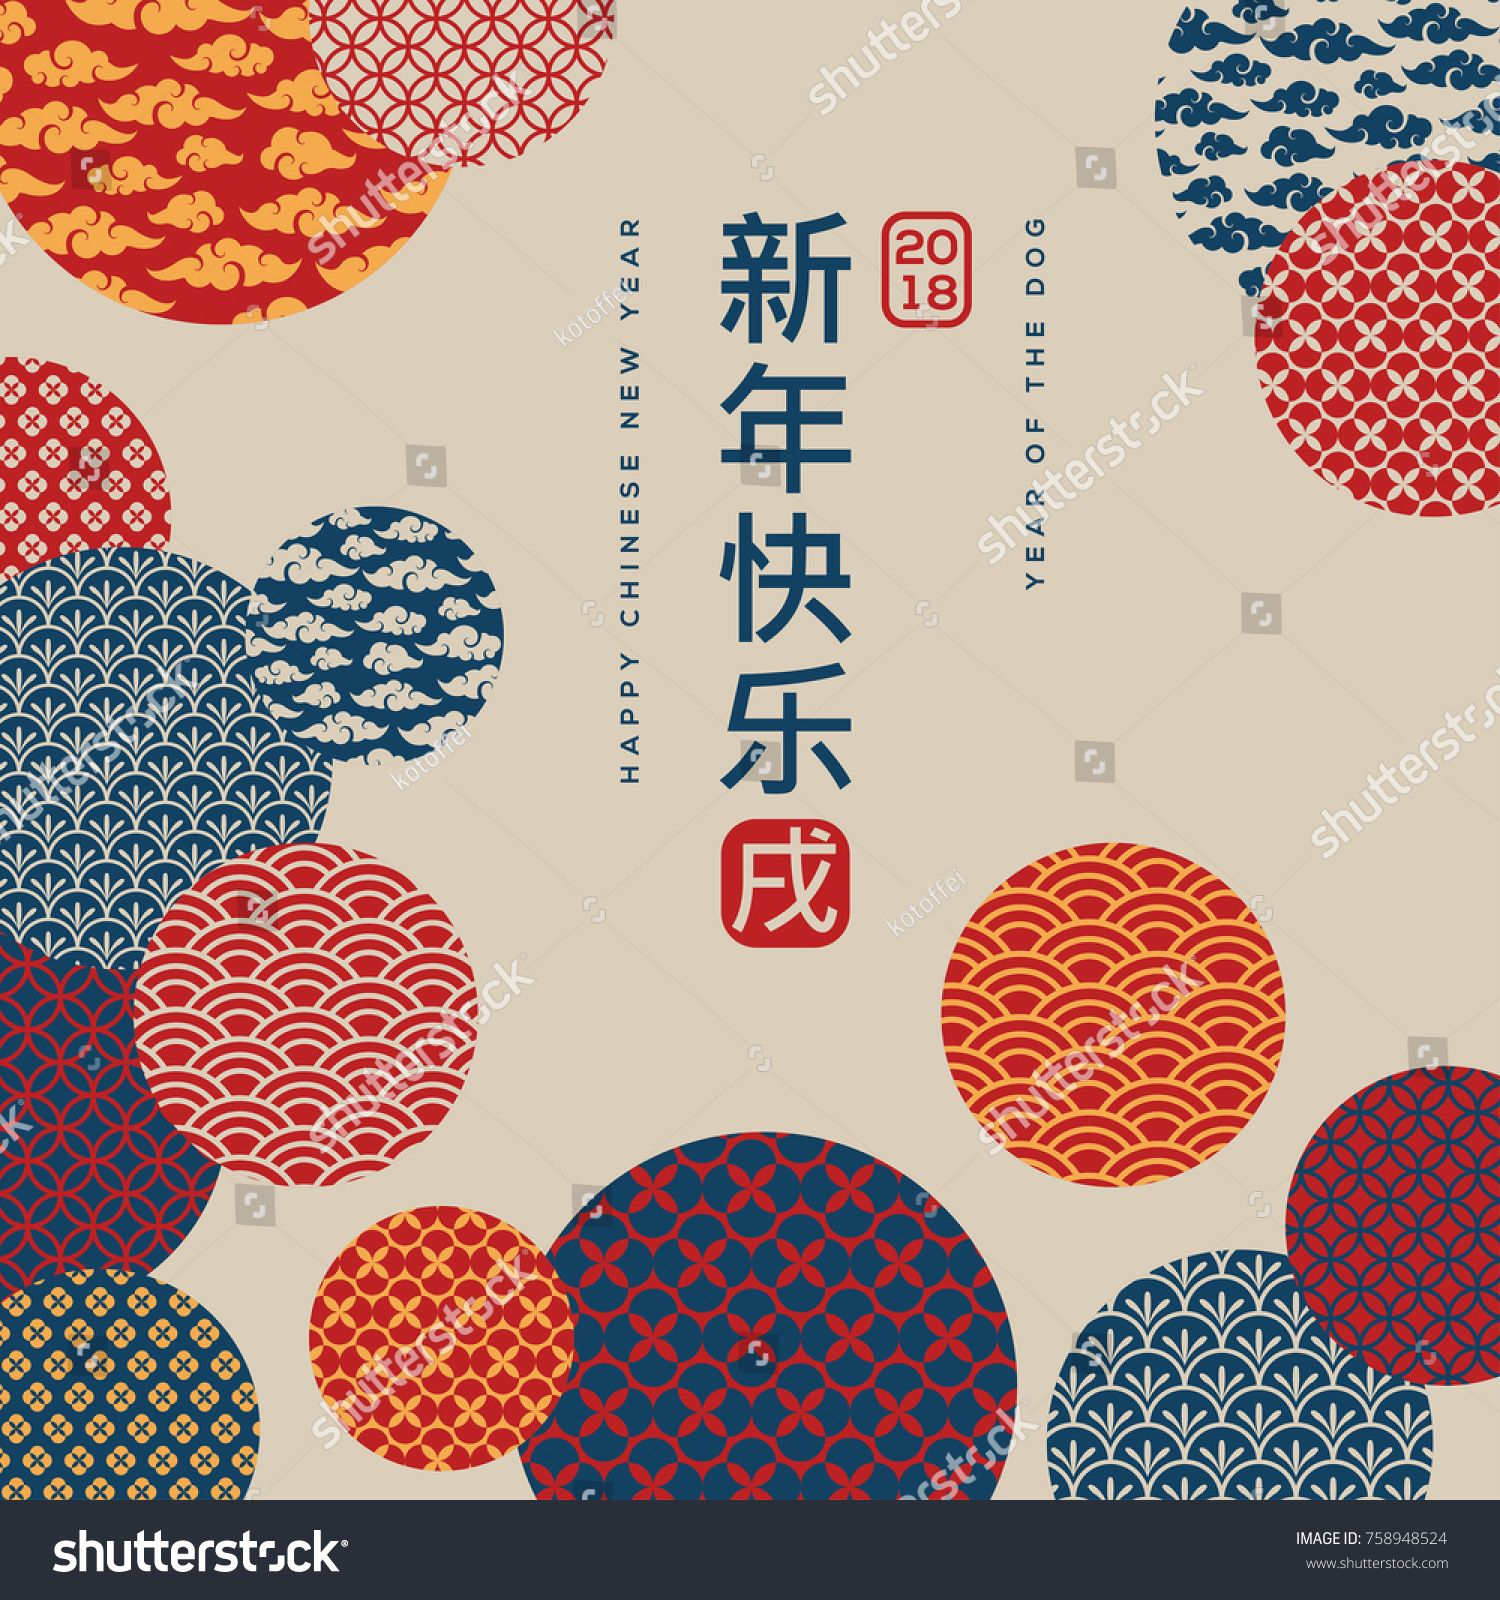 2018 chinese new year greeting card with geometric ornate shapes 2018 chinese new year greeting card with geometric ornate shapes chinese vertical hieroglyphs translation m4hsunfo